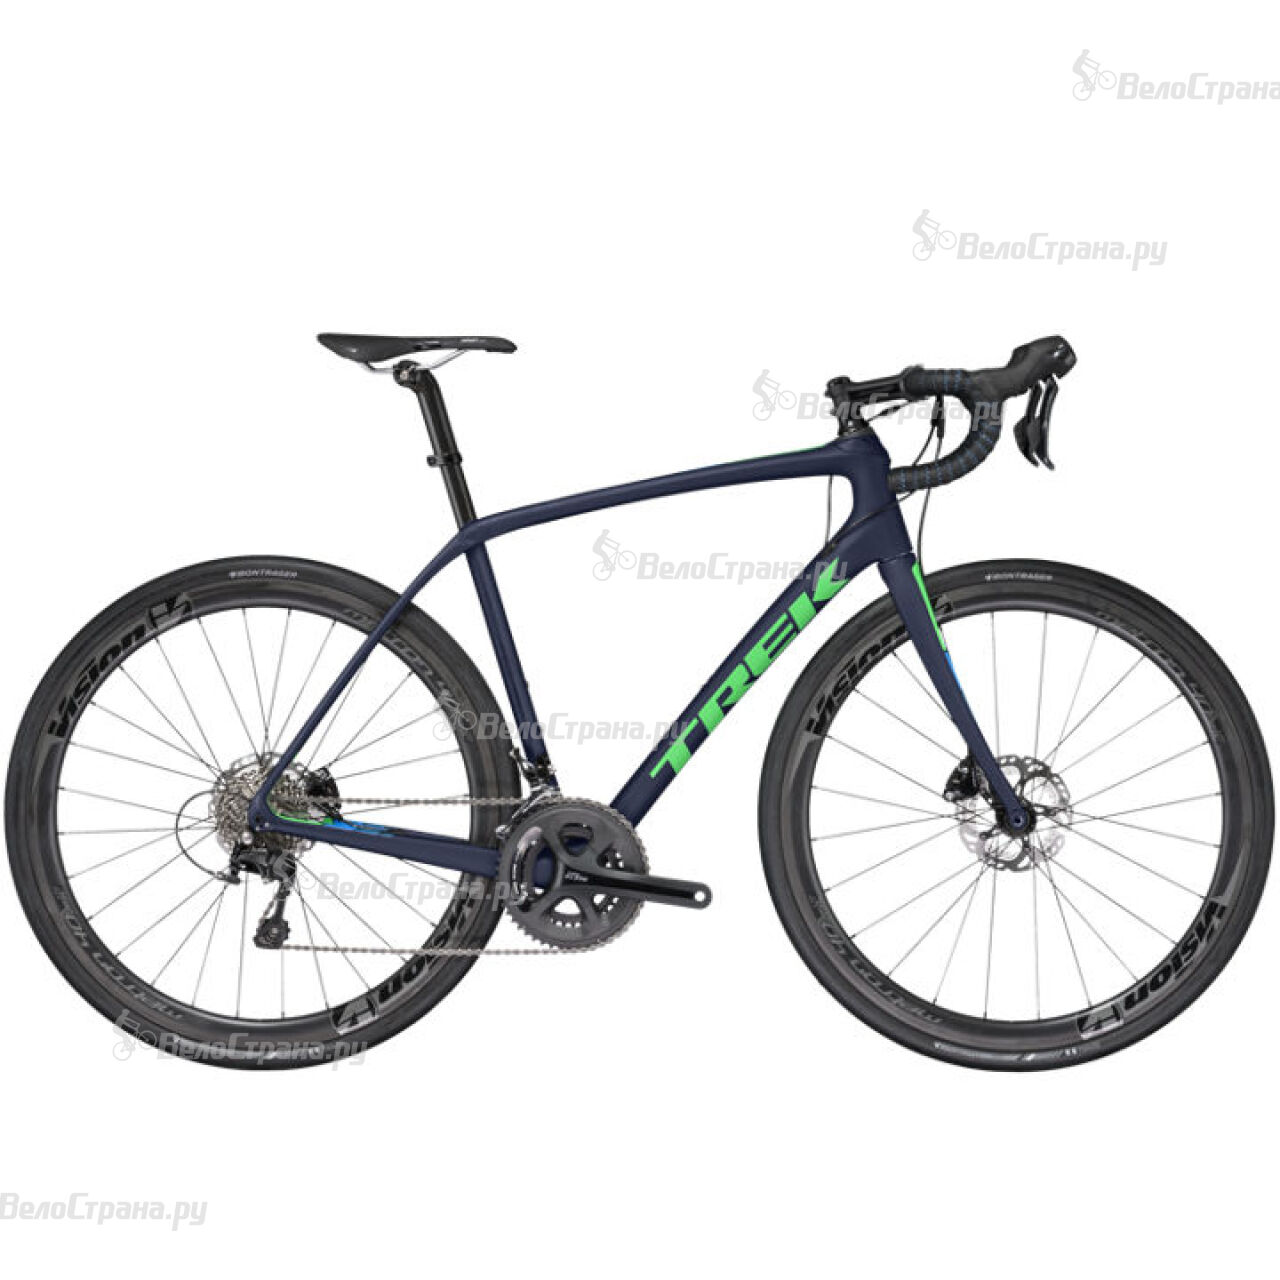 все цены на Велосипед Trek Domane SL 5 Disc (2017) в интернете